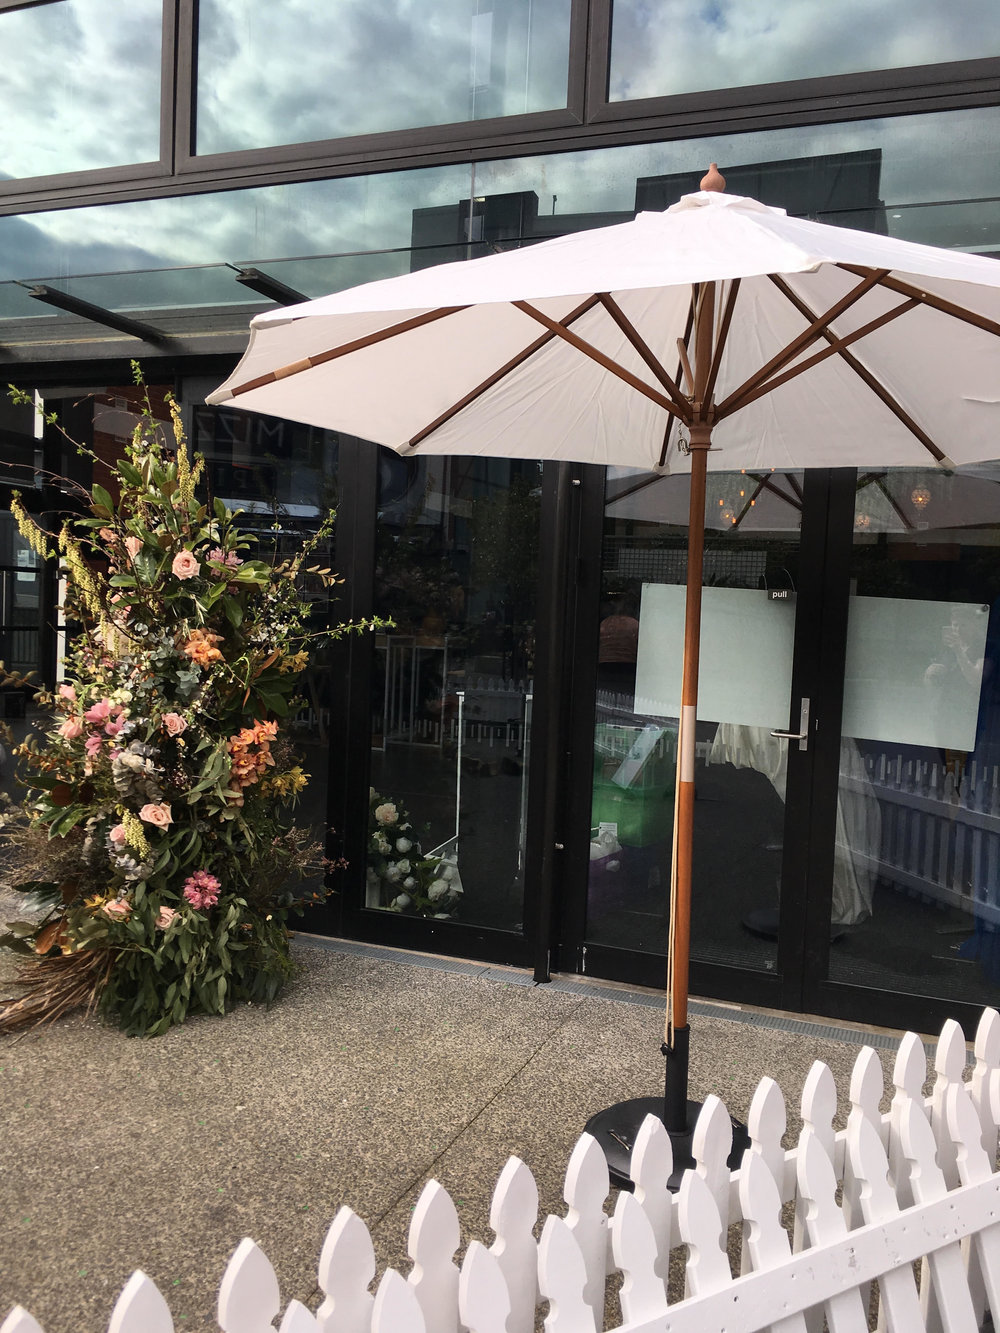 Market Umbrellas - Perfect for a sunny day to create some shade at your event